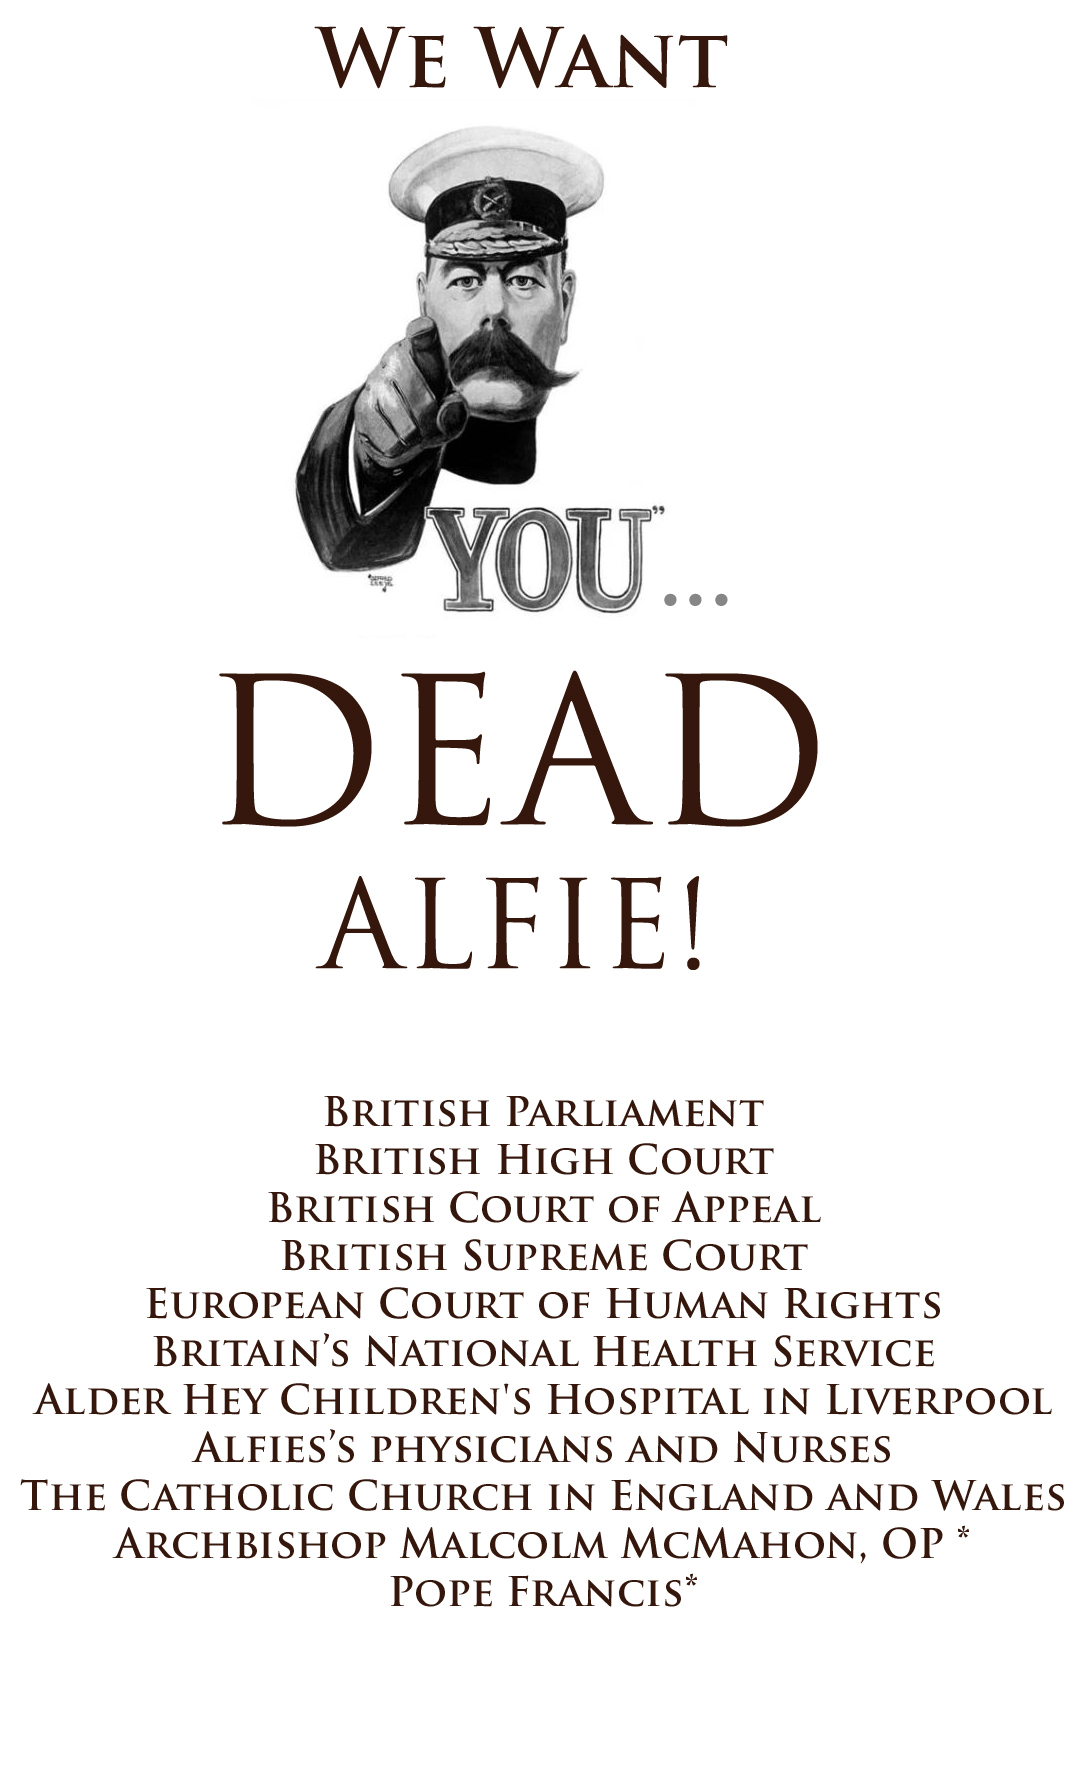 We want you dead, Alfie!